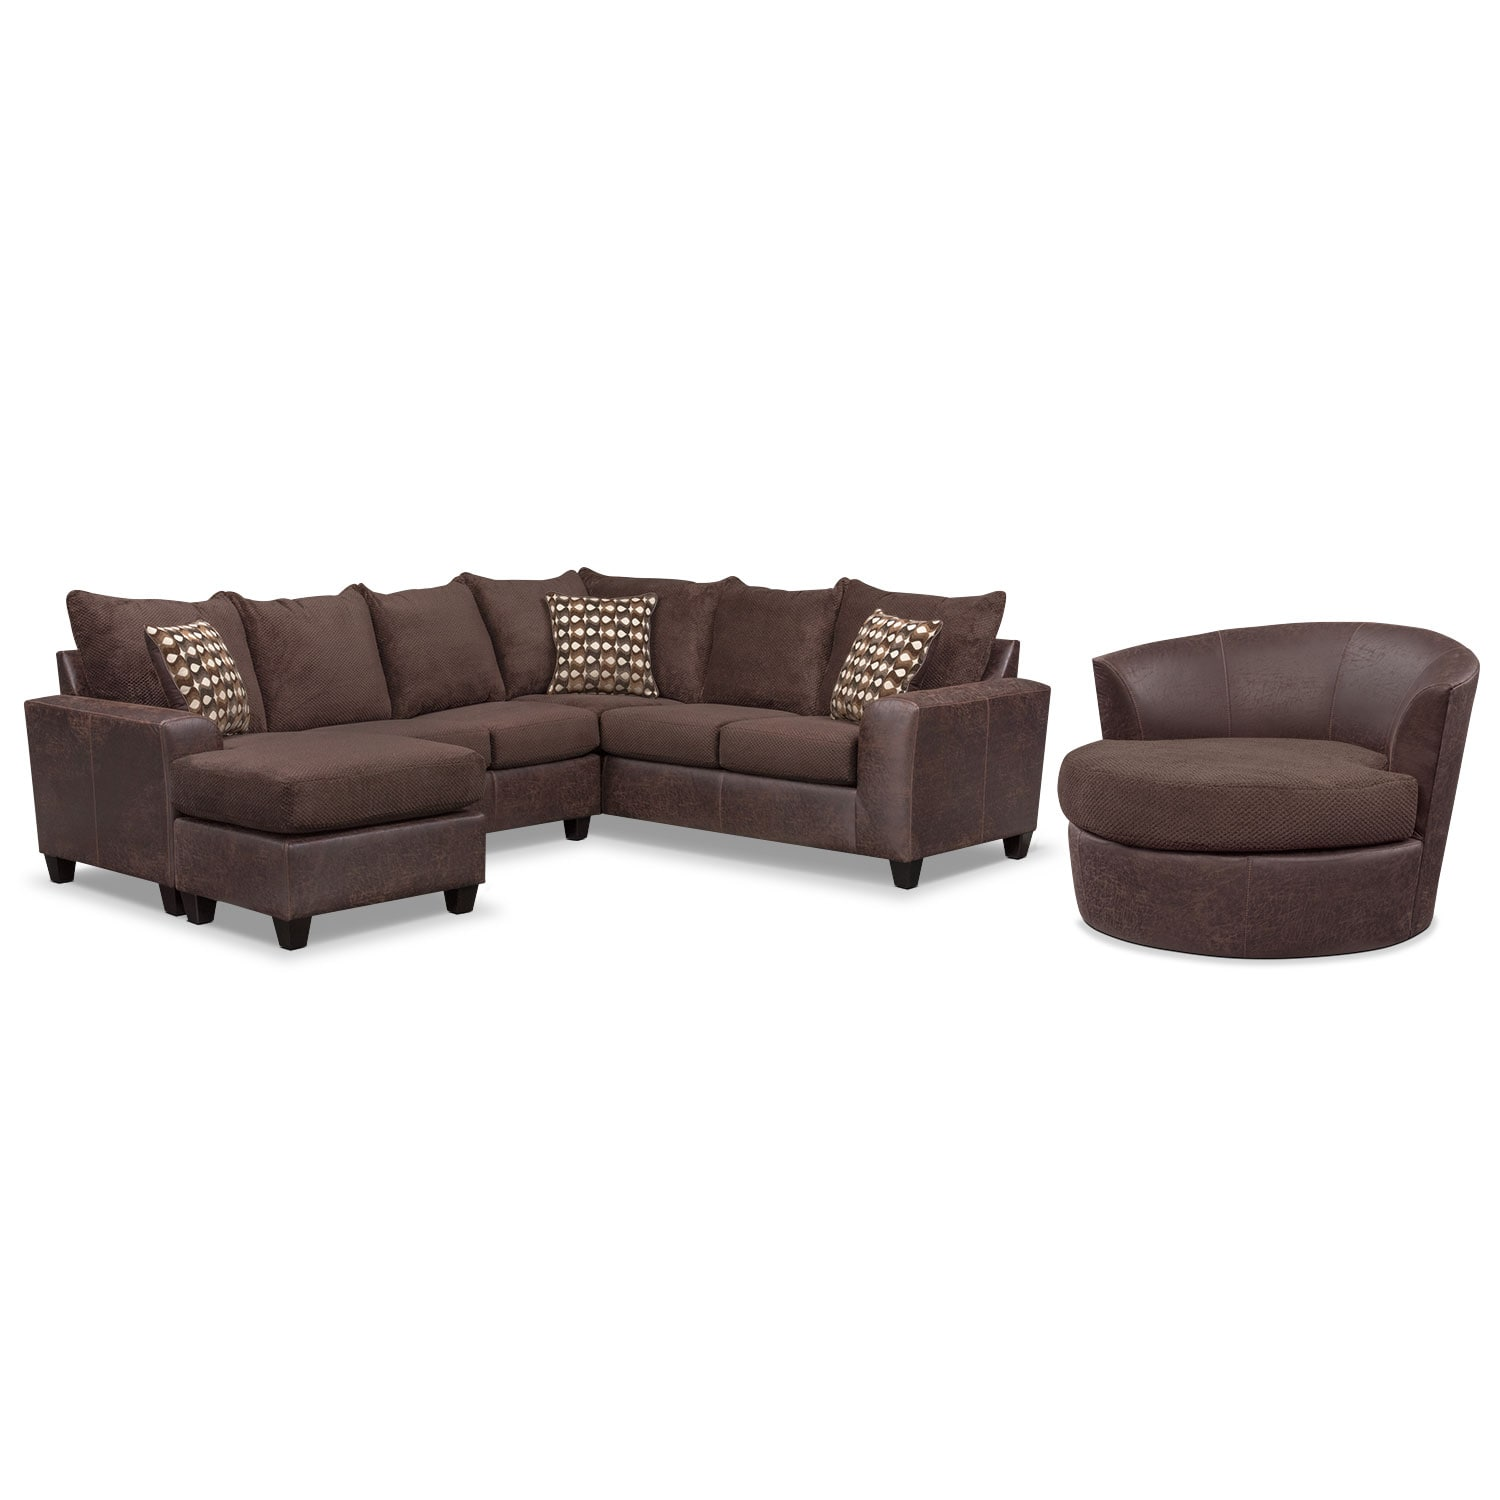 Brando 3 piece sectional with chaise and swivel chair set for 3 piece chaise sectional